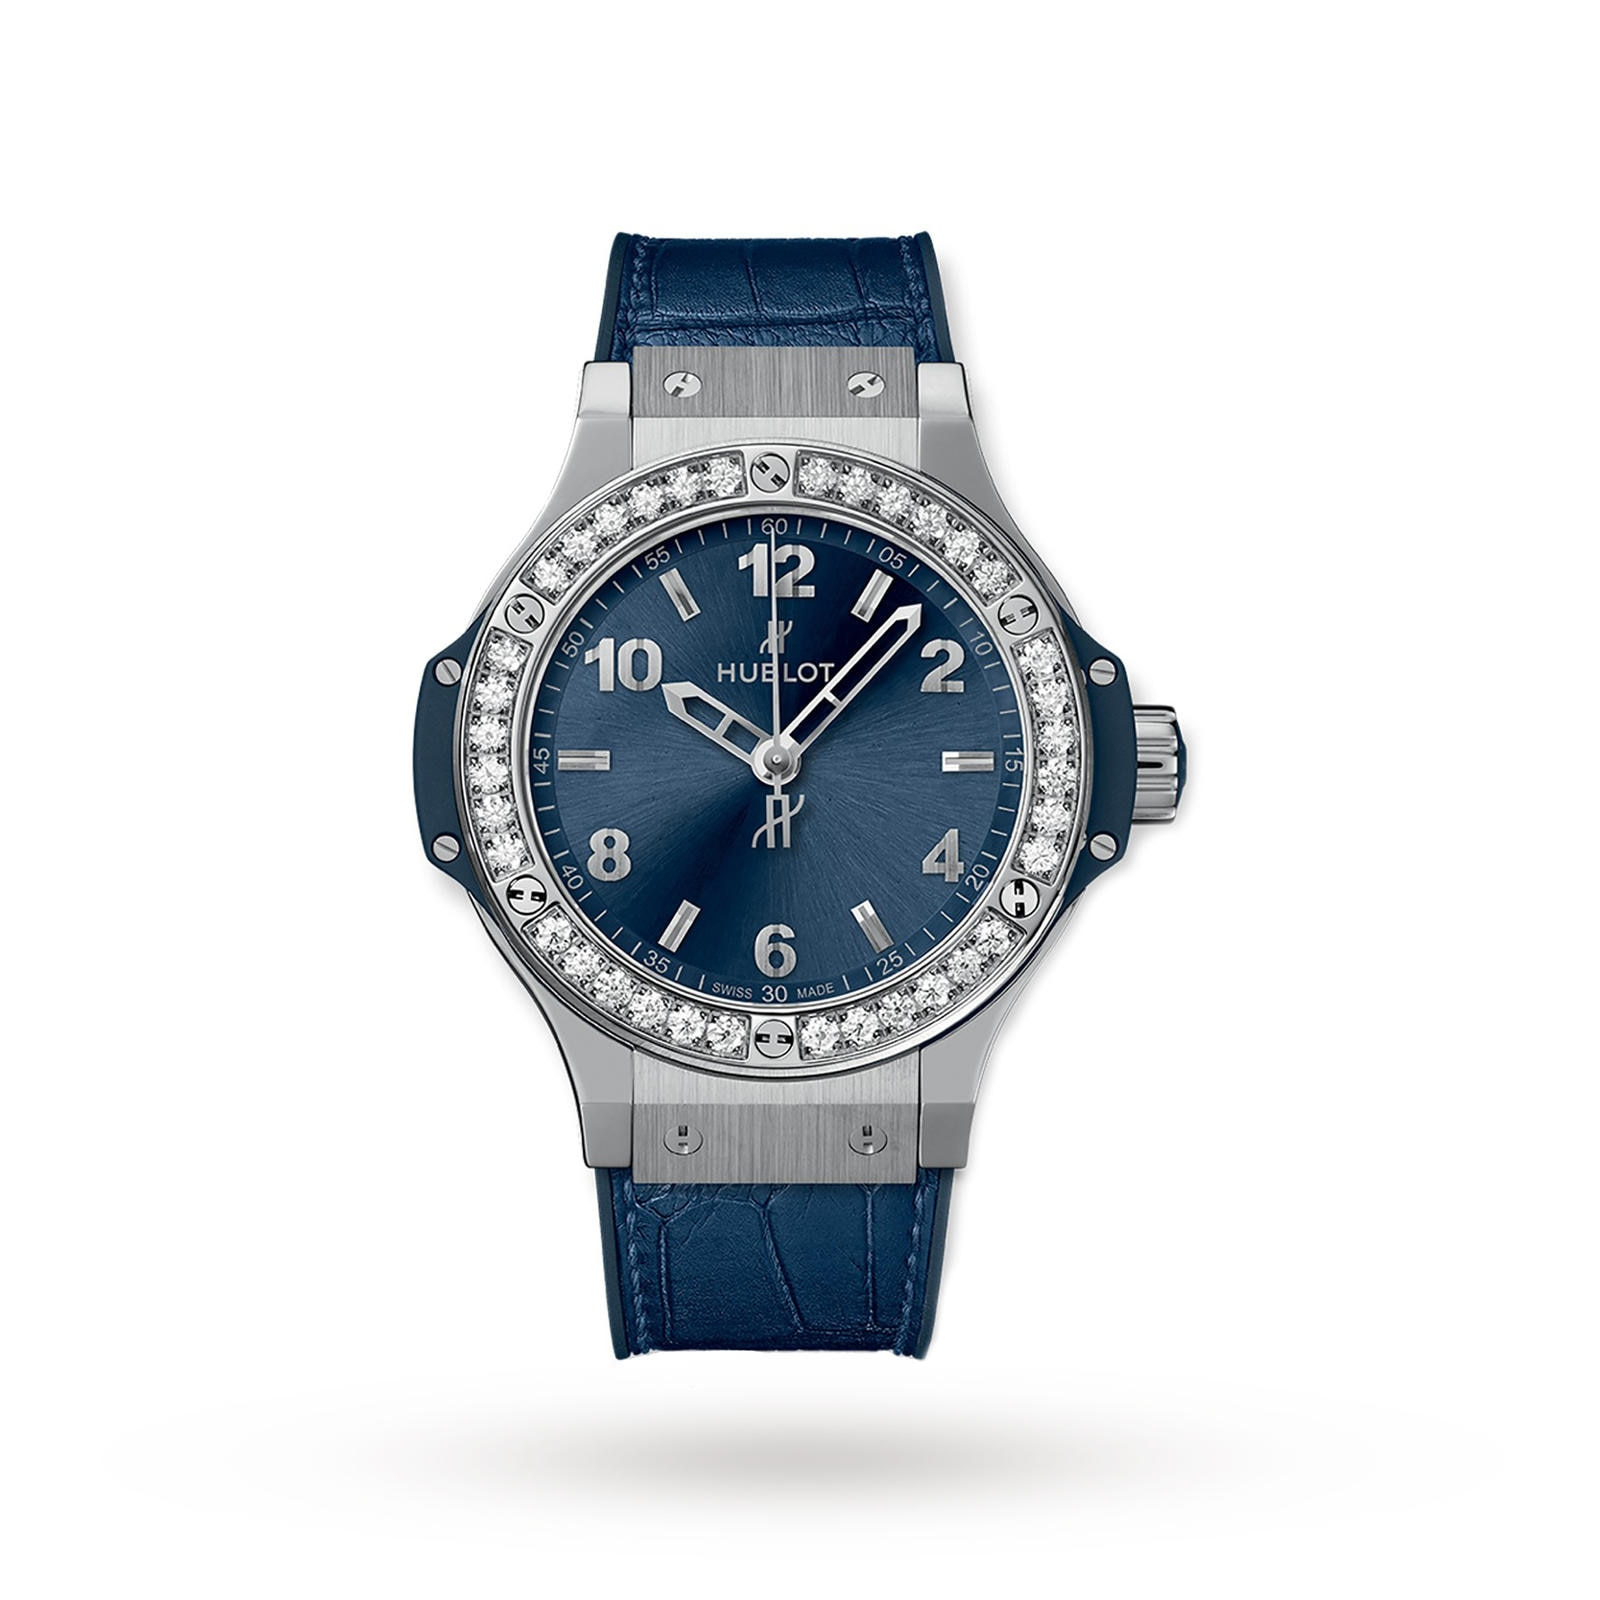 Hublot Hublot Big Bang Steel Blue Diamonds 38mm Ladies Watch